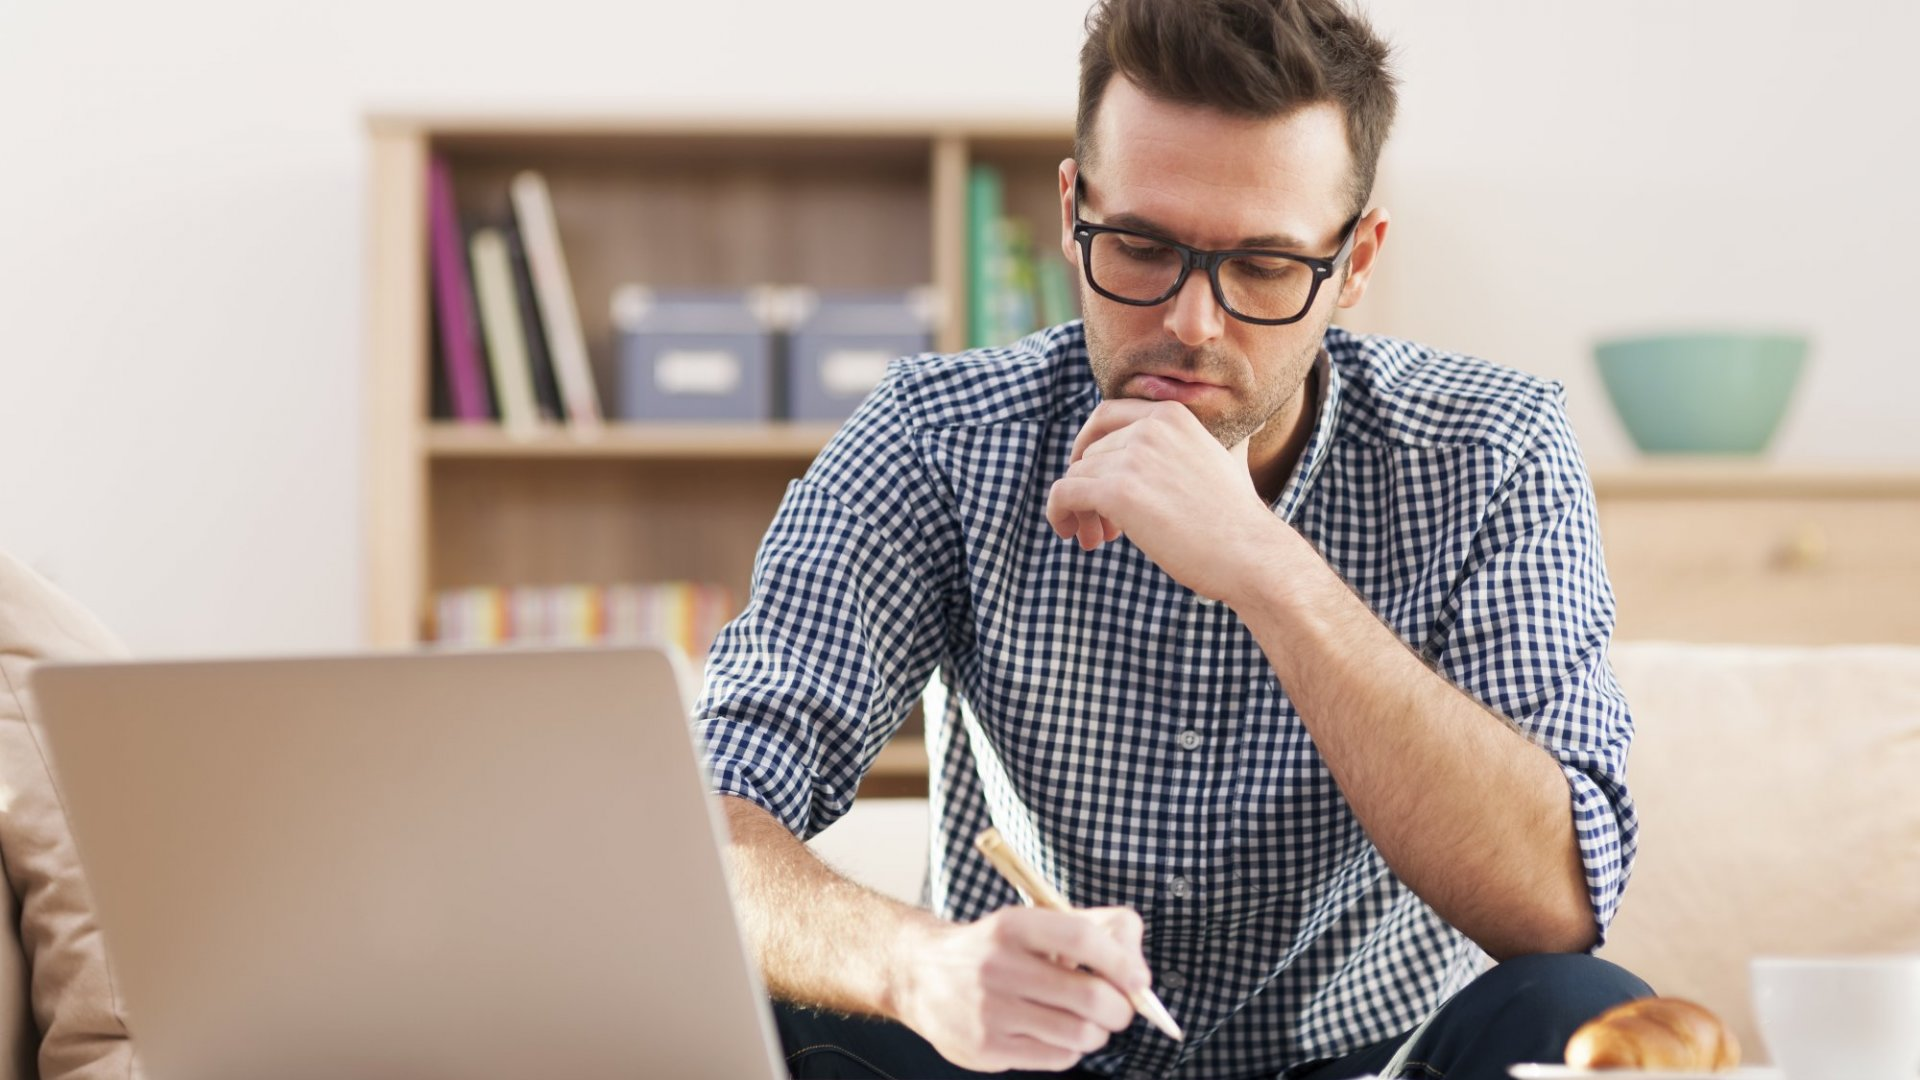 Find out if you need writing training to make you a stronger, more efficient writer at work.